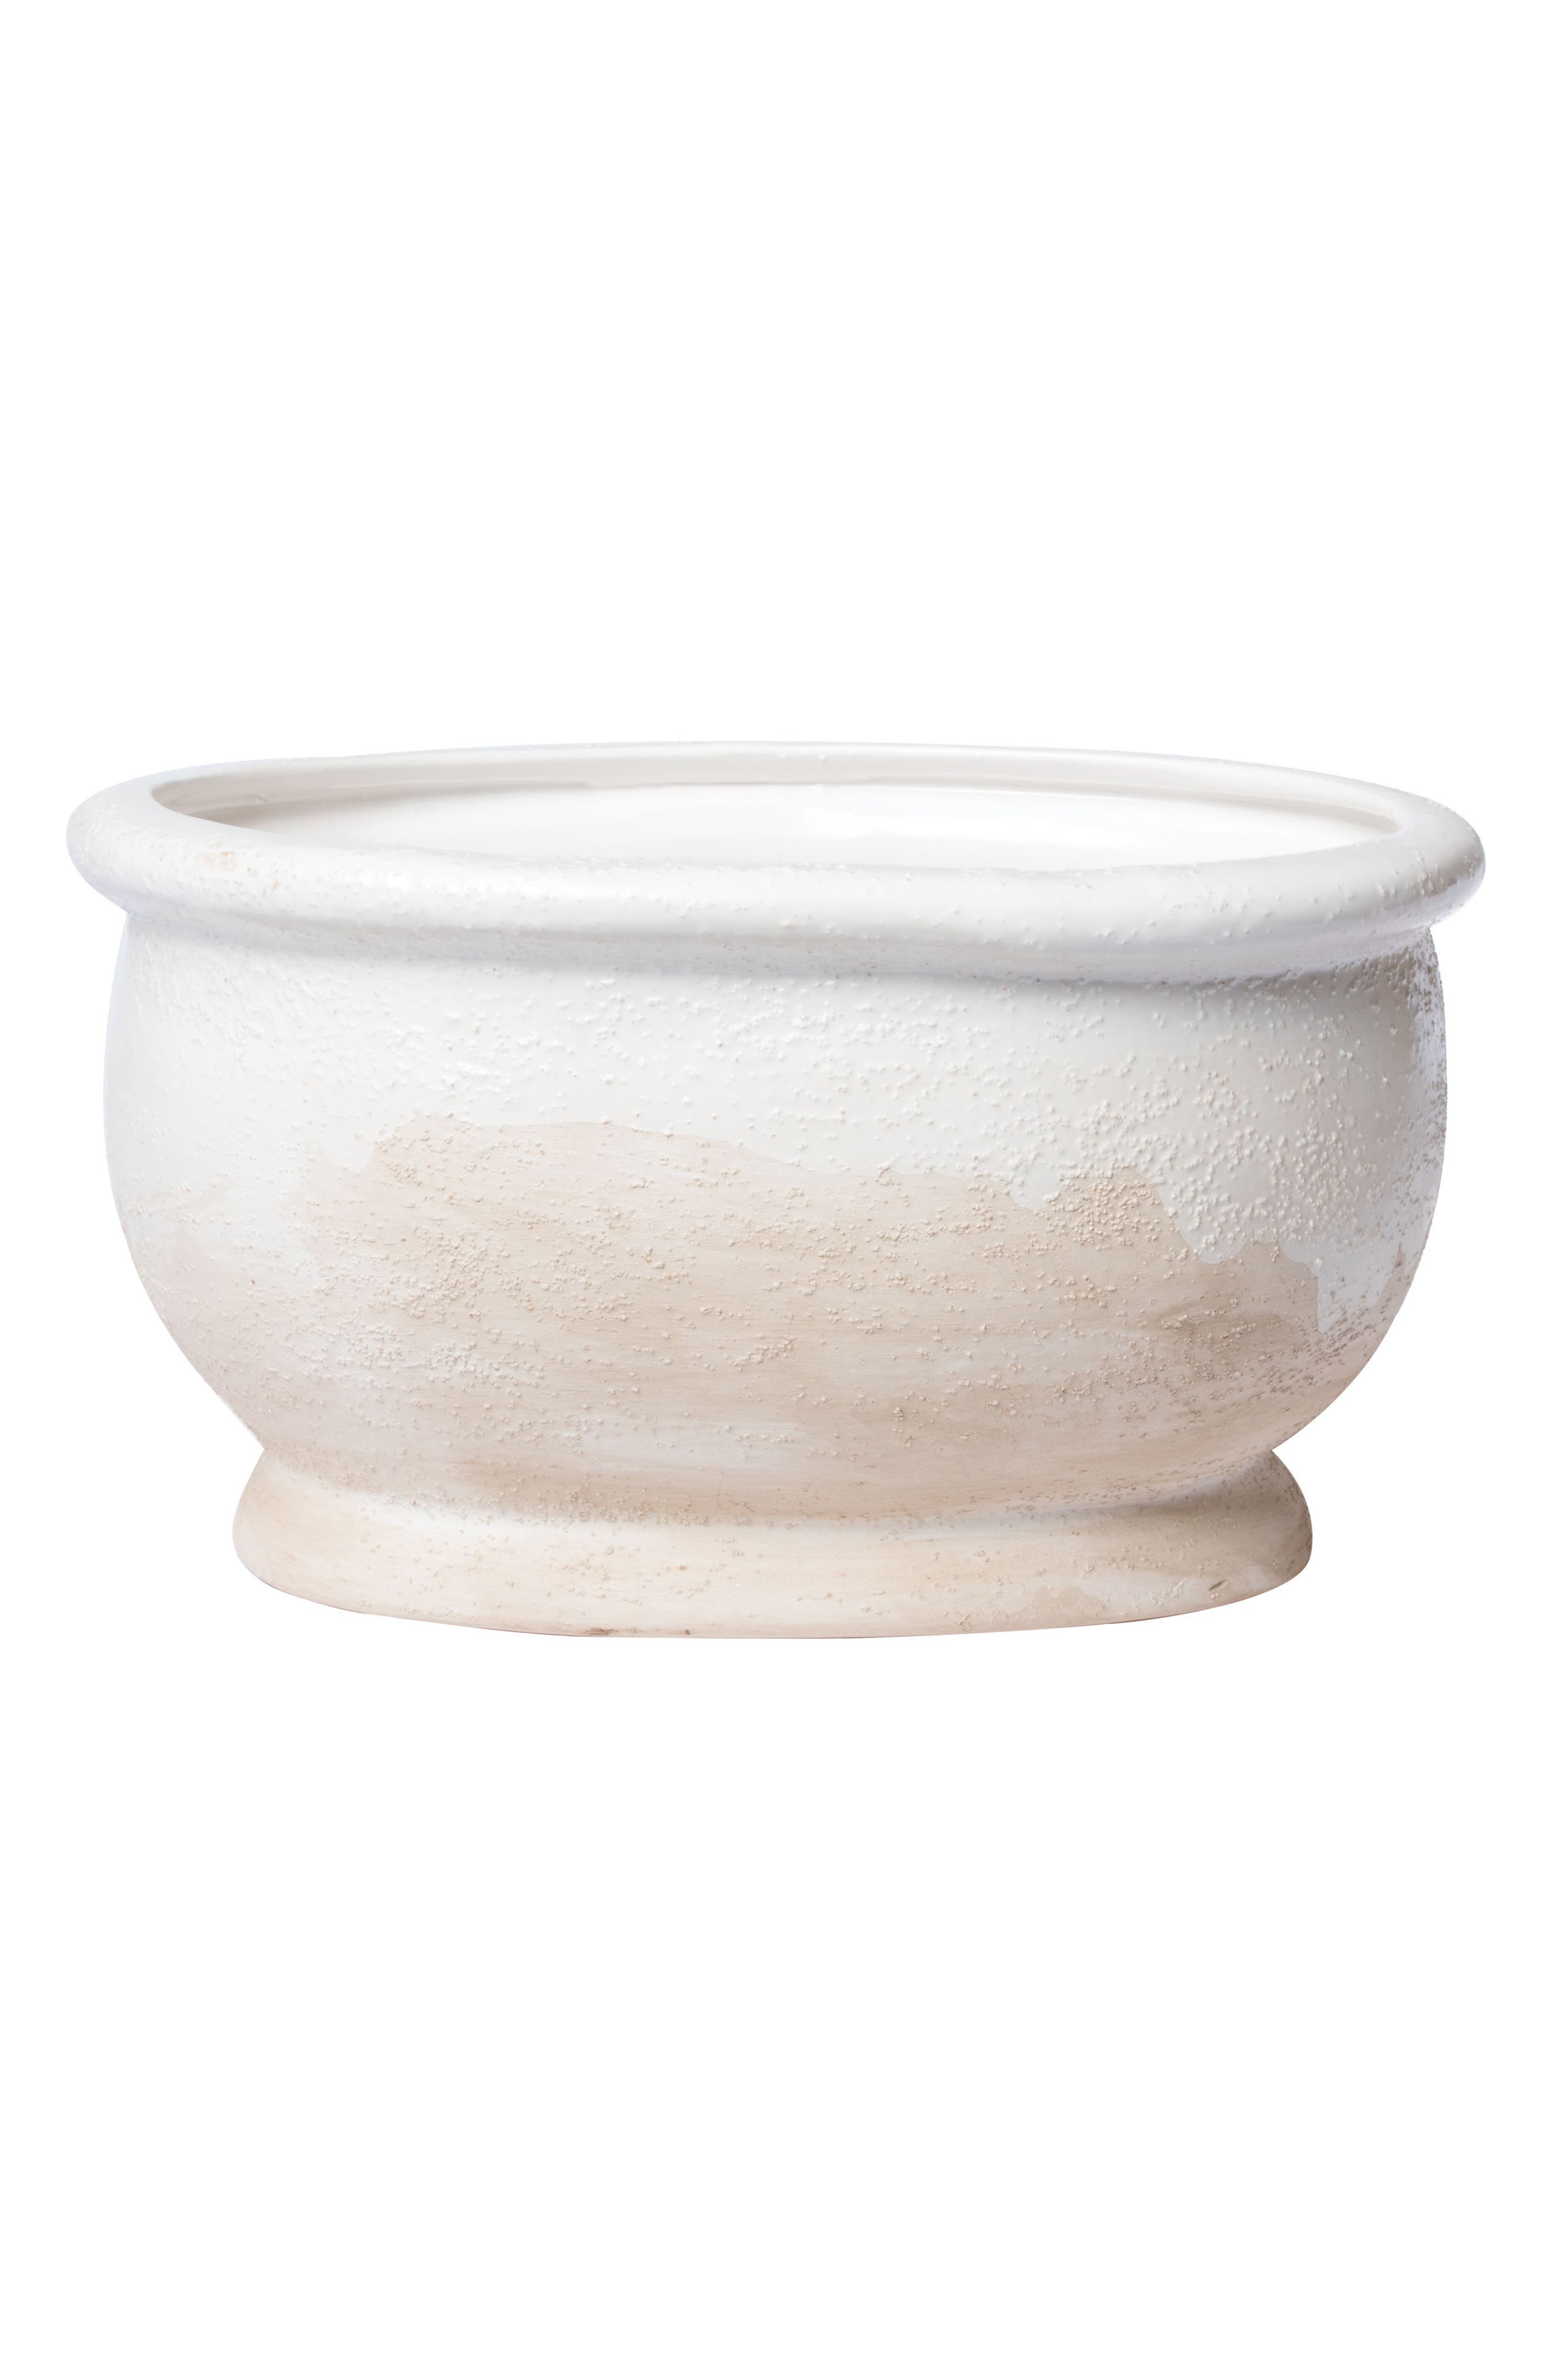 Tuscan Texture Oval Cachepot,                         Main,                         color, White